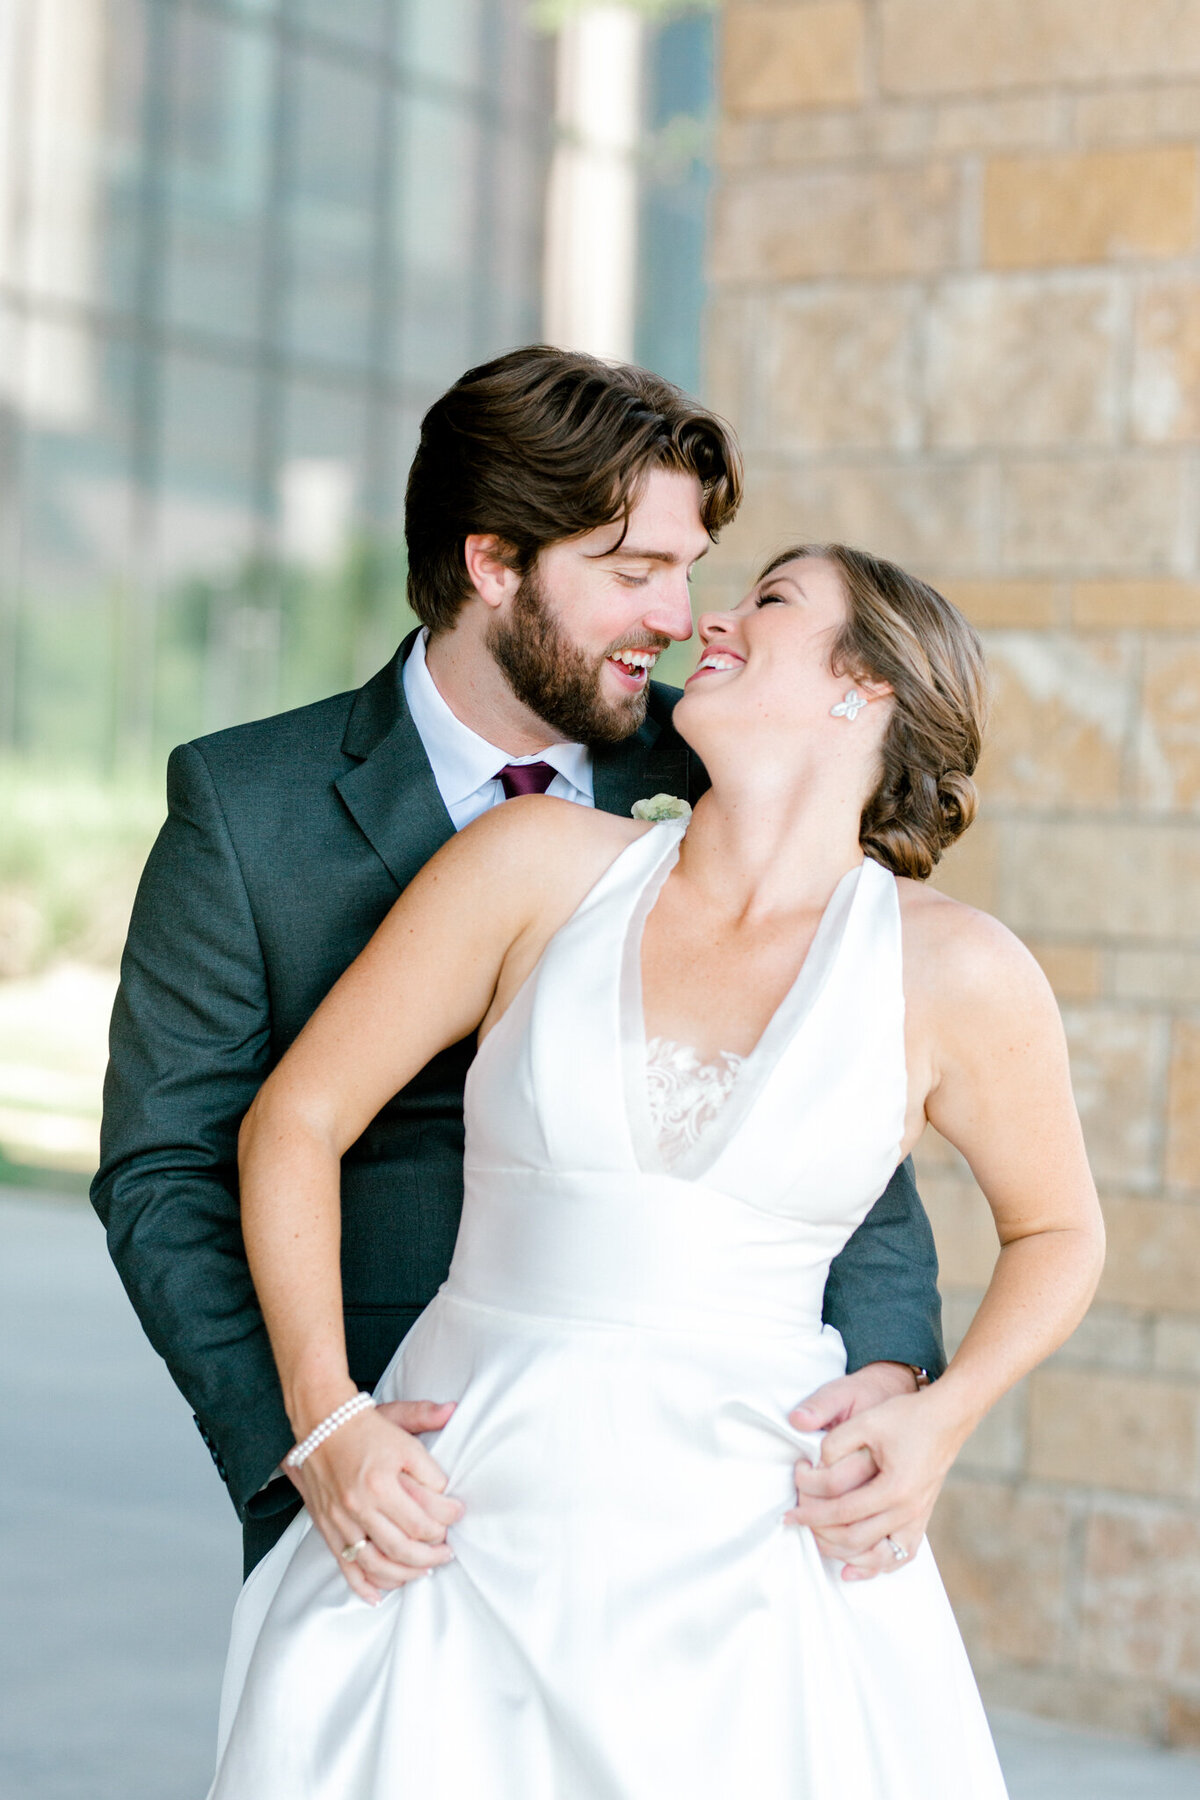 Kaylee & Michael's Wedding at Watermark Community Church | Dallas Wedding Photographer | Sami Kathryn Photography-72